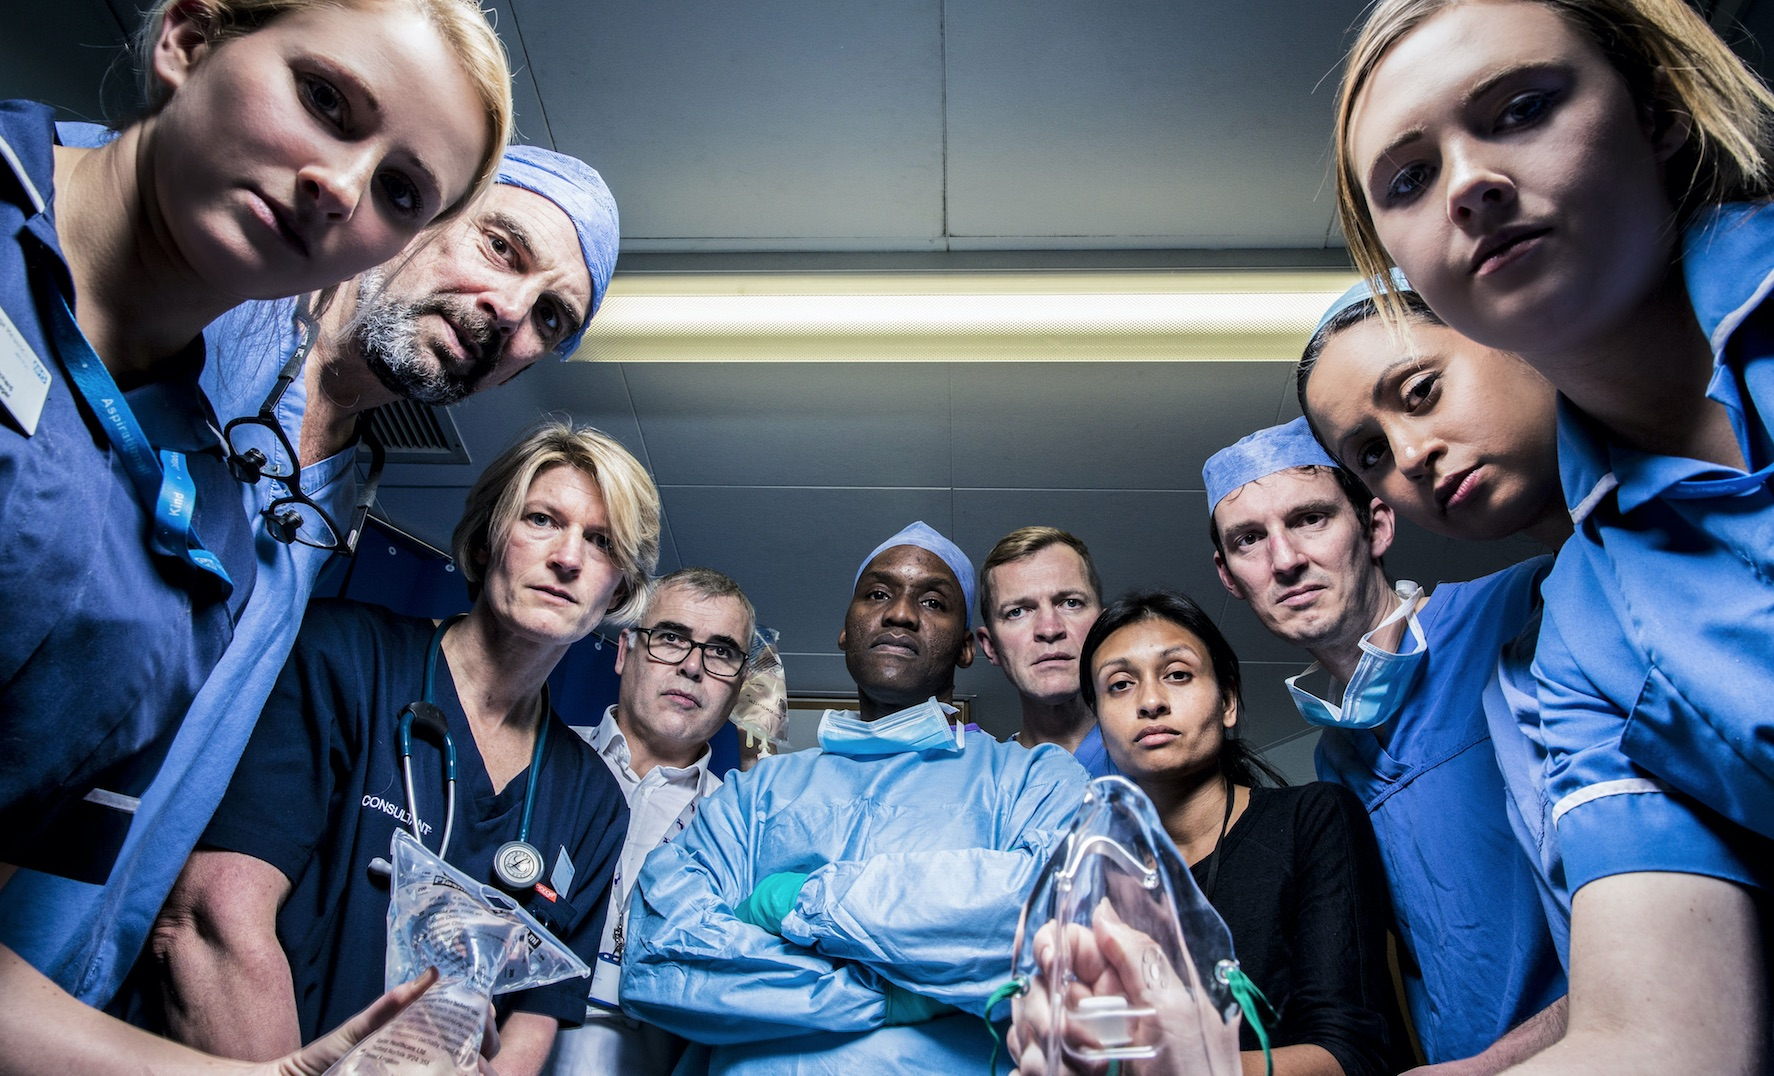 BBC documentary Hospital features astonishing footage of Westminster terror attacker and the survivors' fight for life